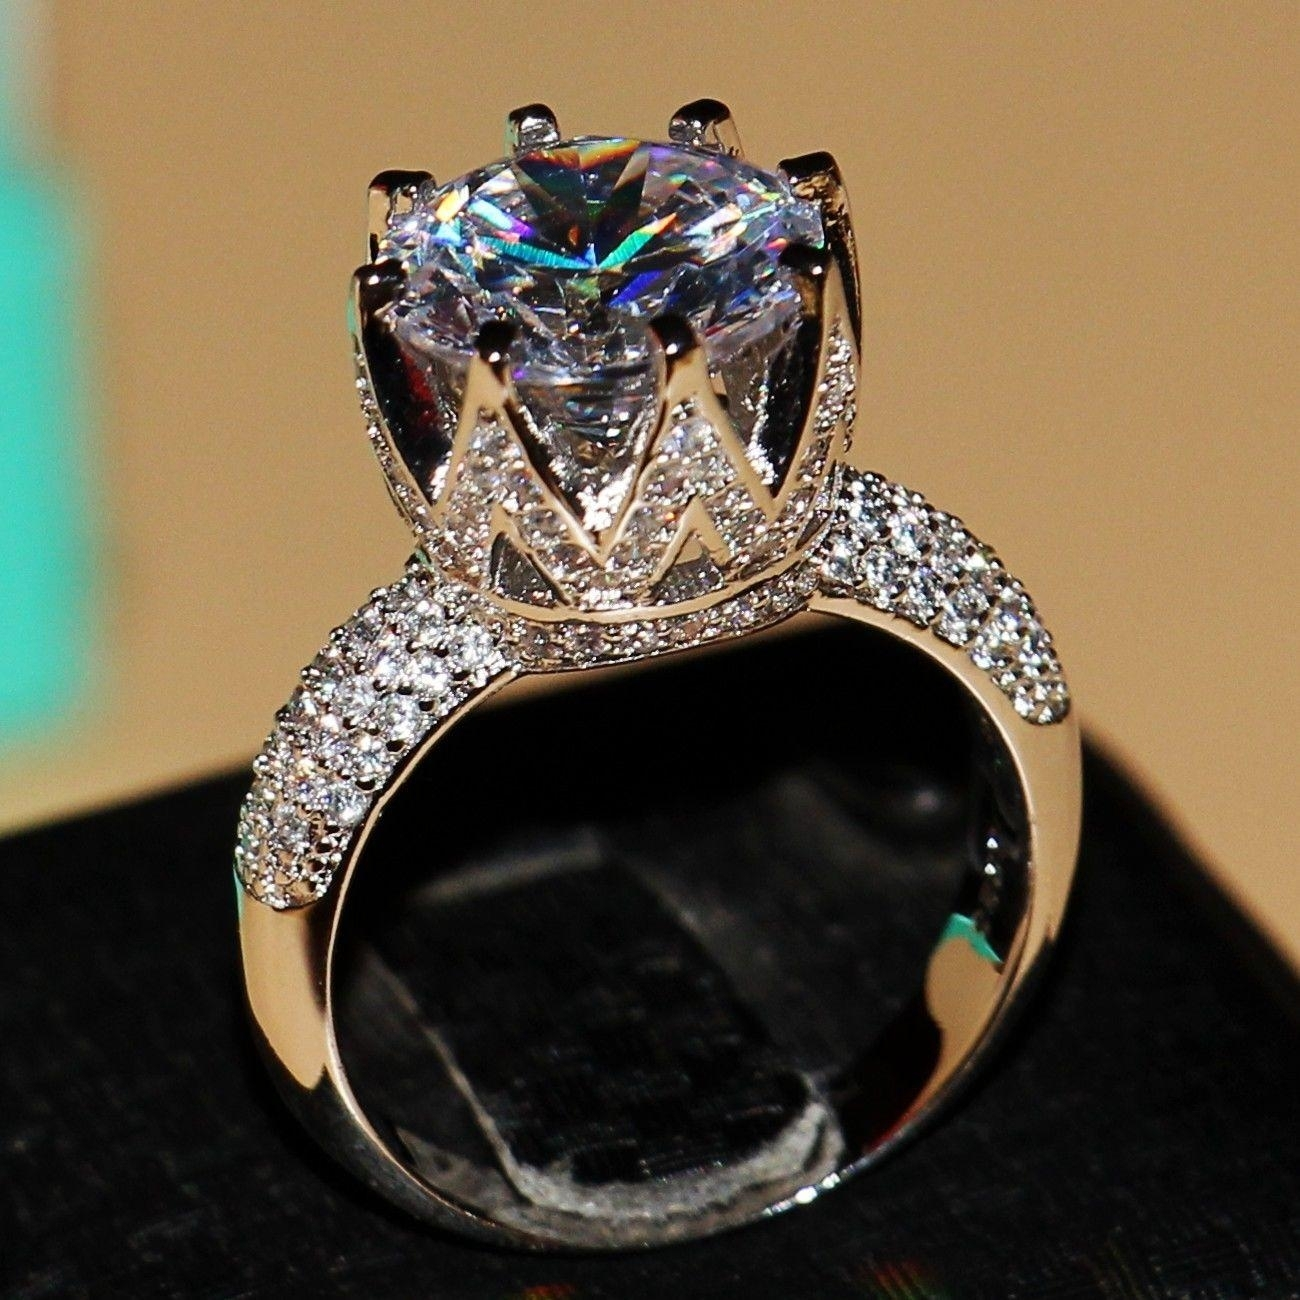 2018 Victoria Wieck 8Ct Big Stone Solitaire 925 Sterling Silver With Regard To 2017 Diamond Anniversary Bands In Sterling Silver (View 1 of 15)